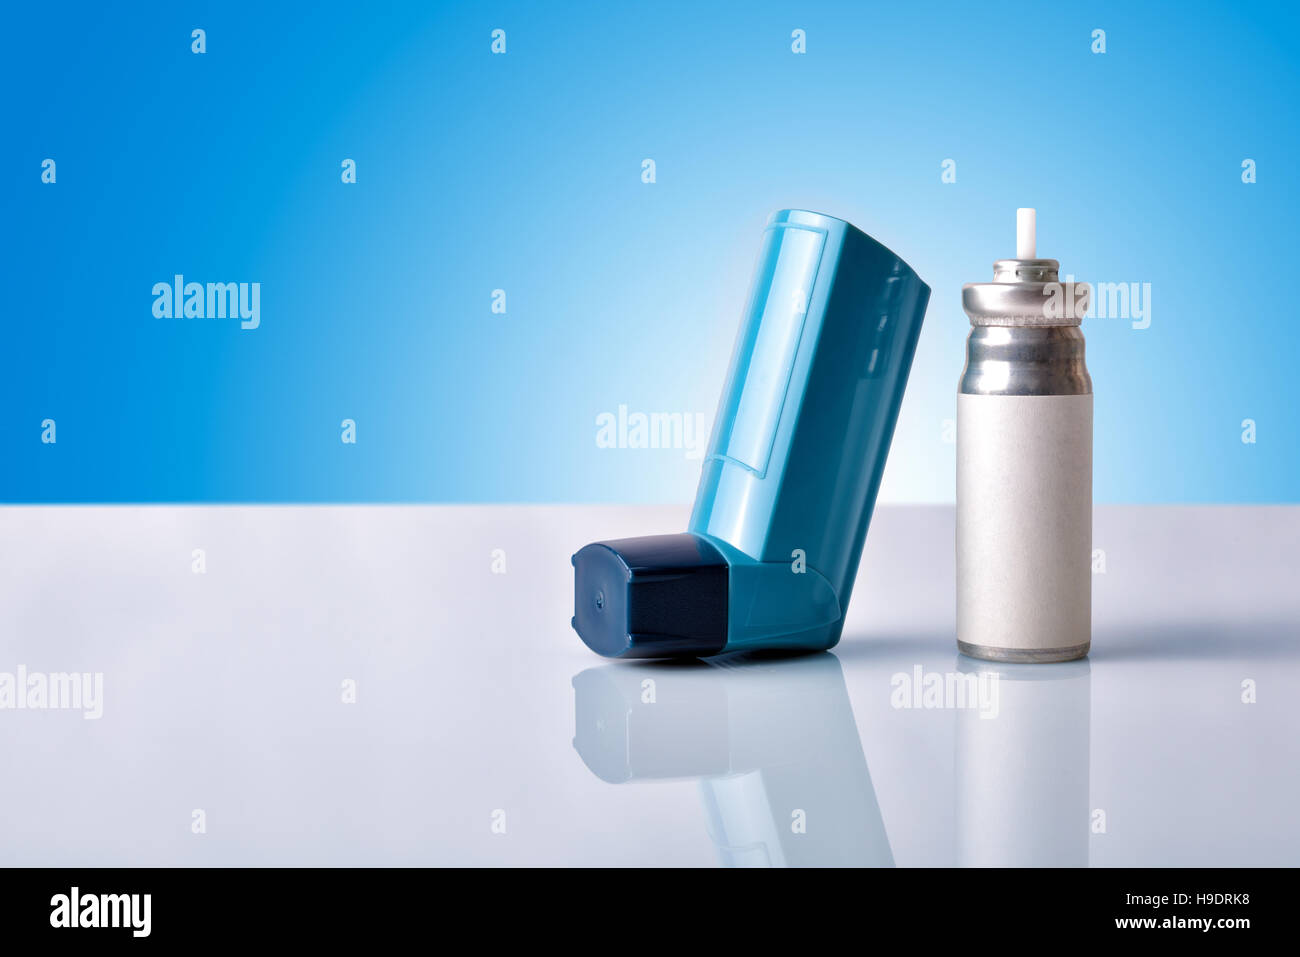 Cartridge and blue medicine inhaler on white glass table with blue gradient background. Front view. Horizontal composition - Stock Image